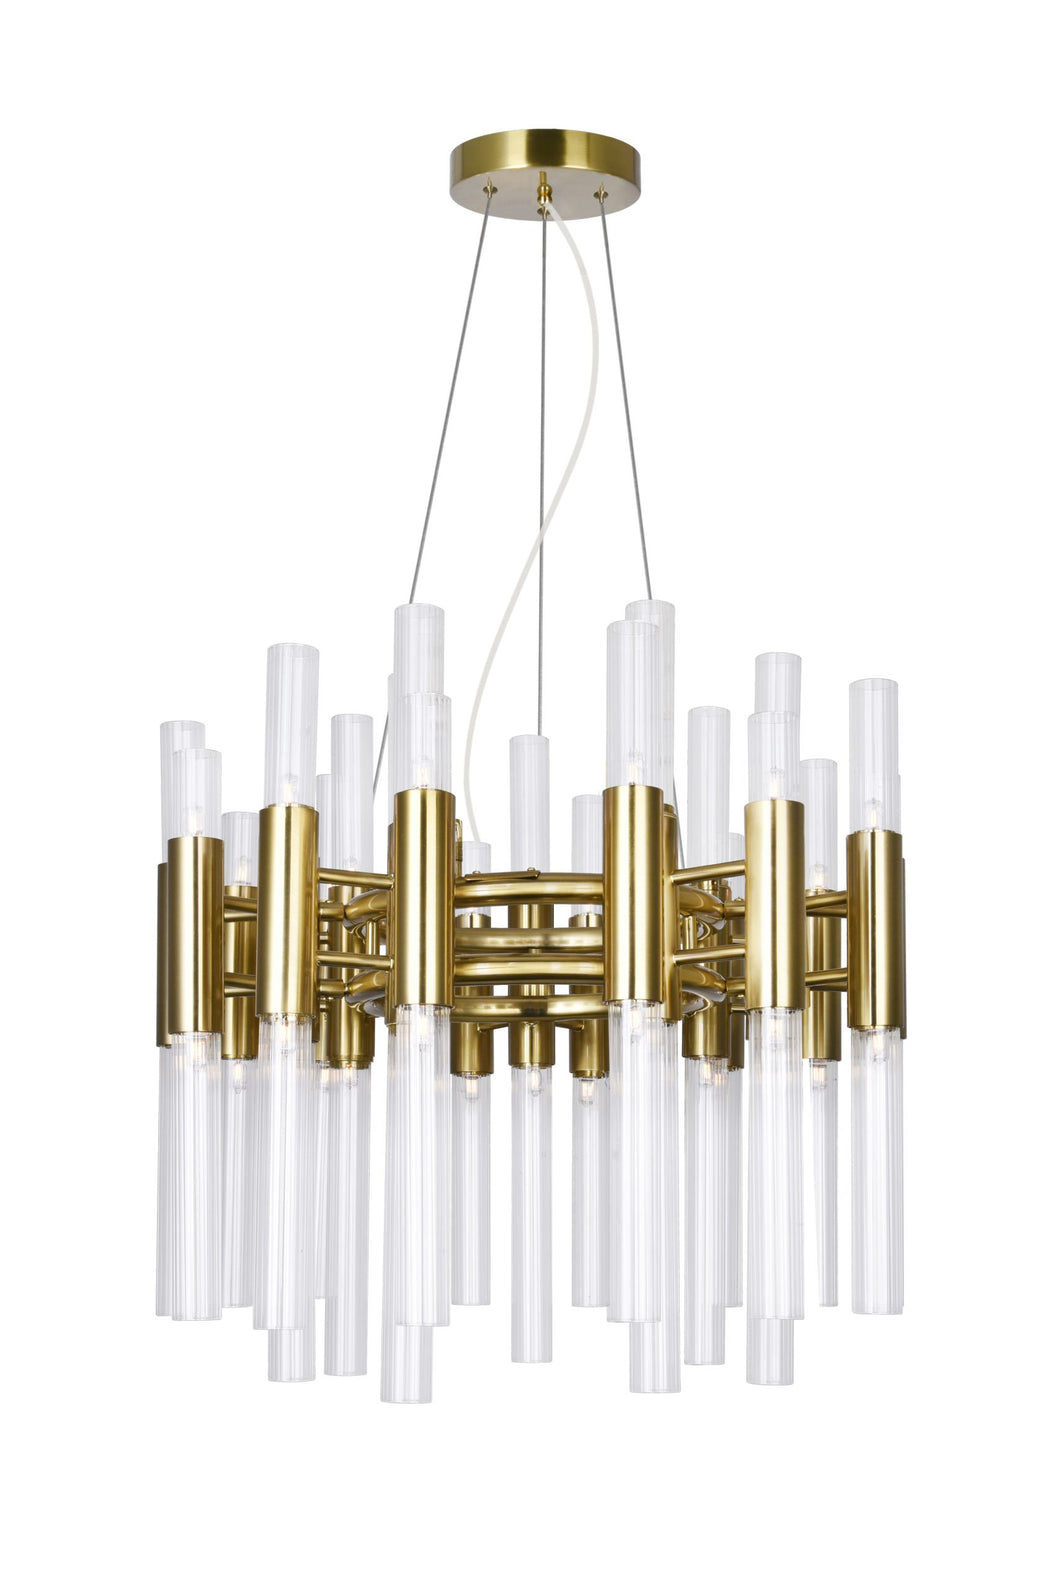 42 LIGHT CHANDELIER WITH BRASS FINISH - Dream art Gallery